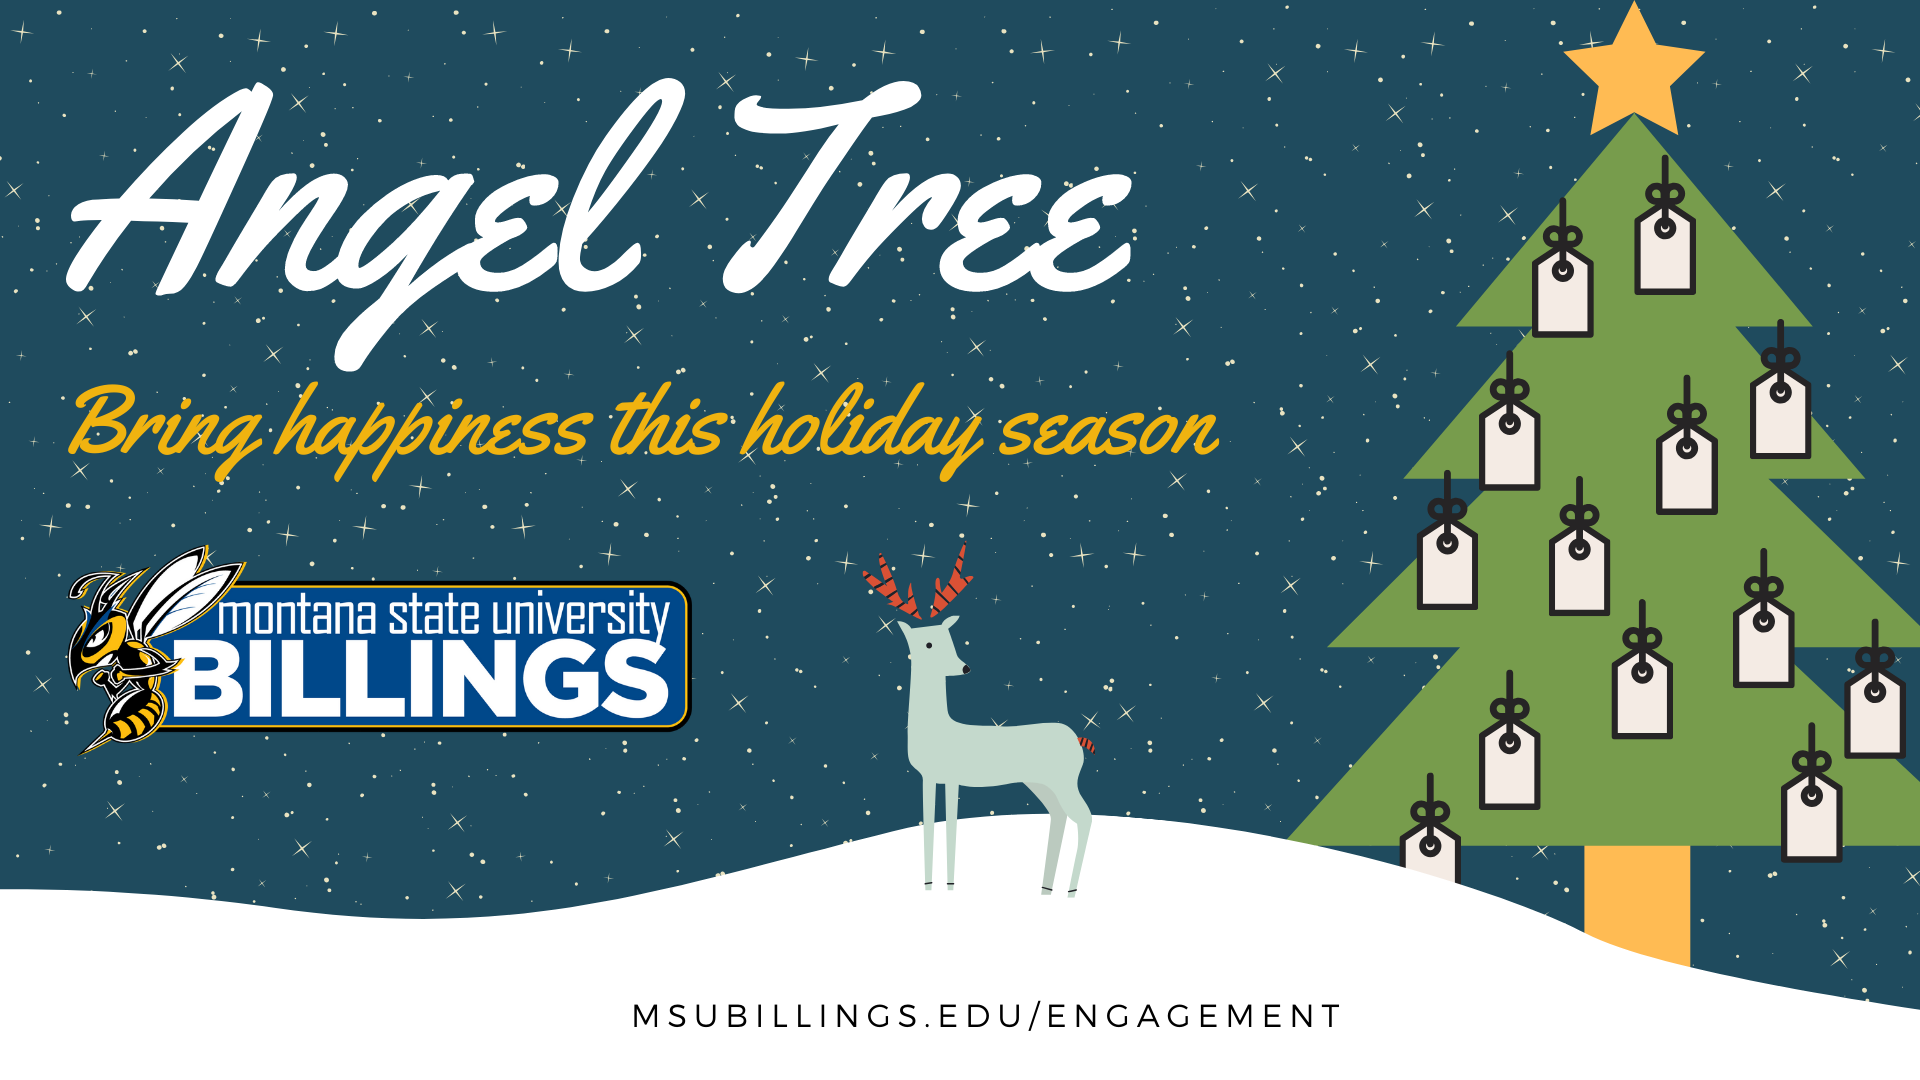 ANGEL TREE BRING HAPPINESS THIS HOLIDAY SEASON MSUBILLINGS.EDU/ENGAGEMENT